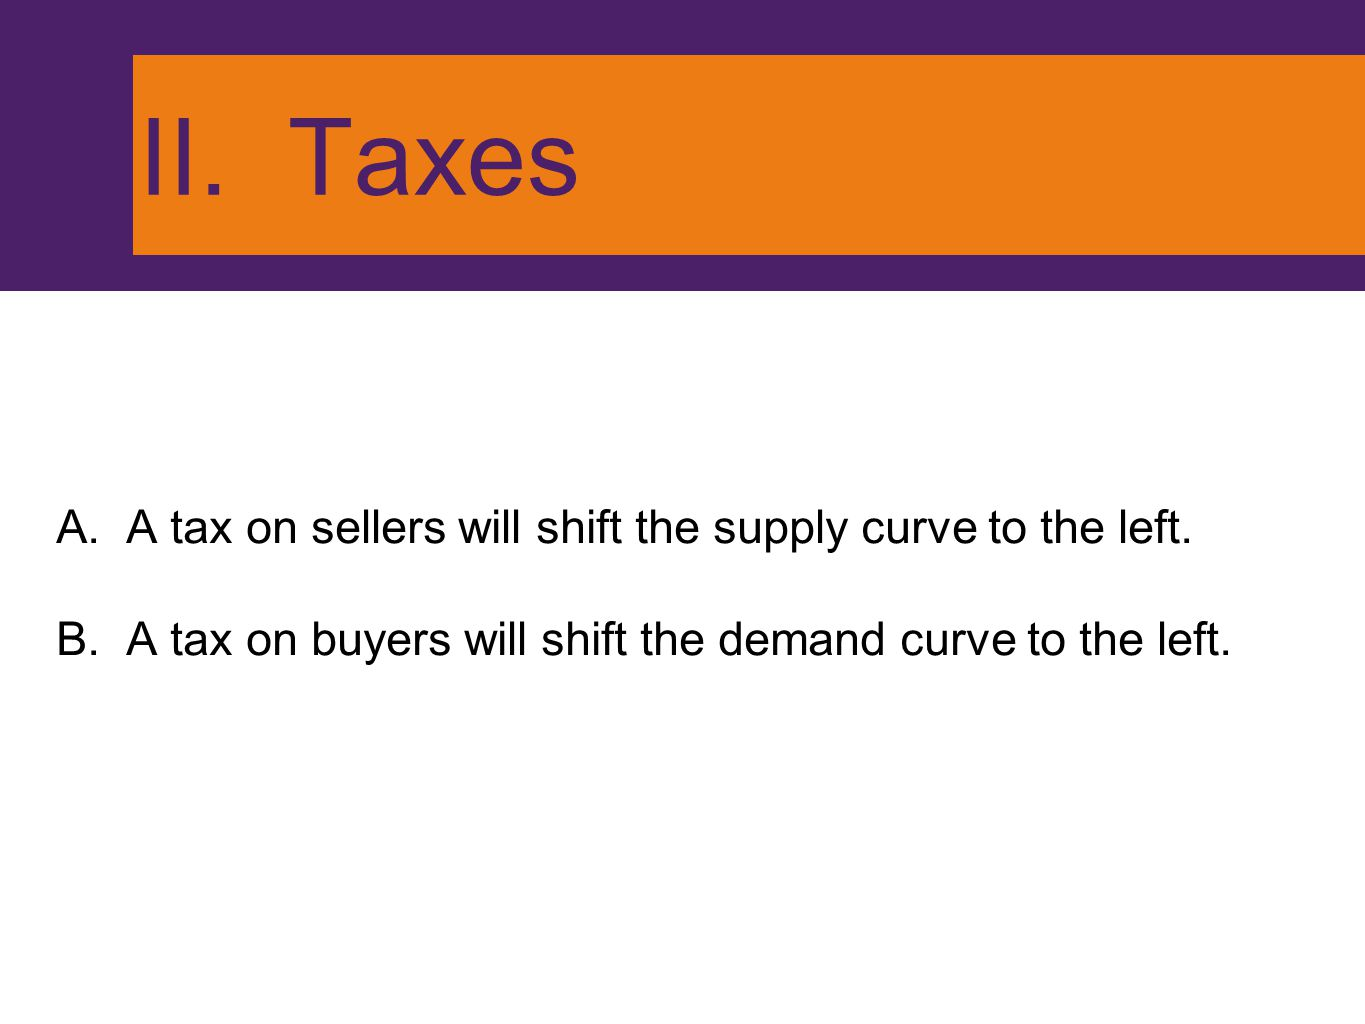 II. Taxes A. A tax on sellers will shift the supply curve to the left. B. A tax on buyers will shift the demand curve to the left.